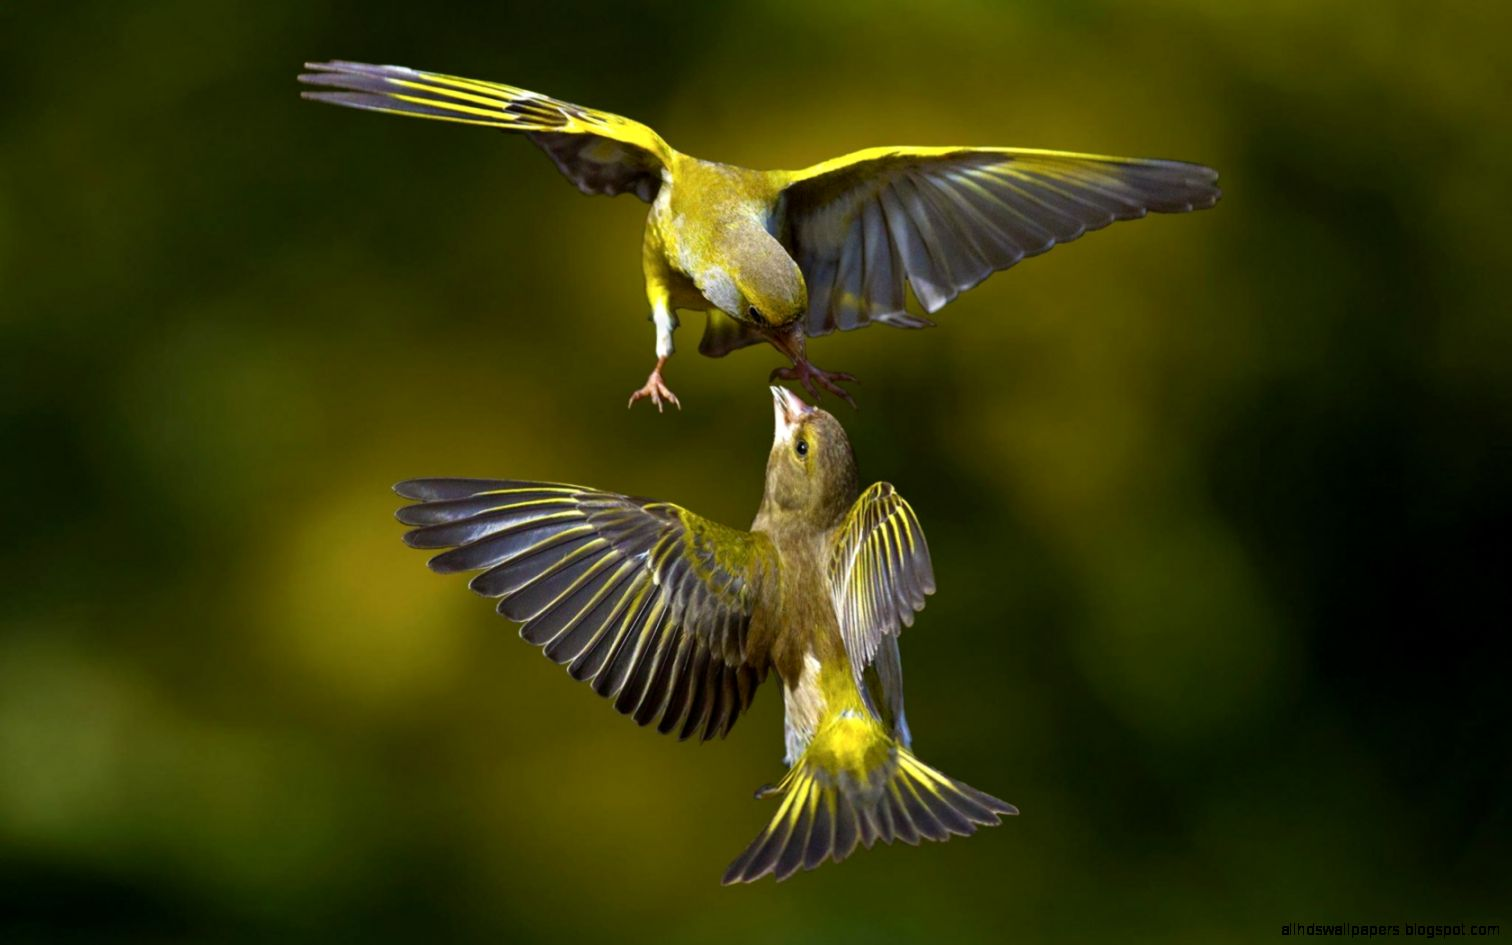 Macro photography birds wallpaper 1080p all hd wallpapers - Hd pics of nature with birds ...